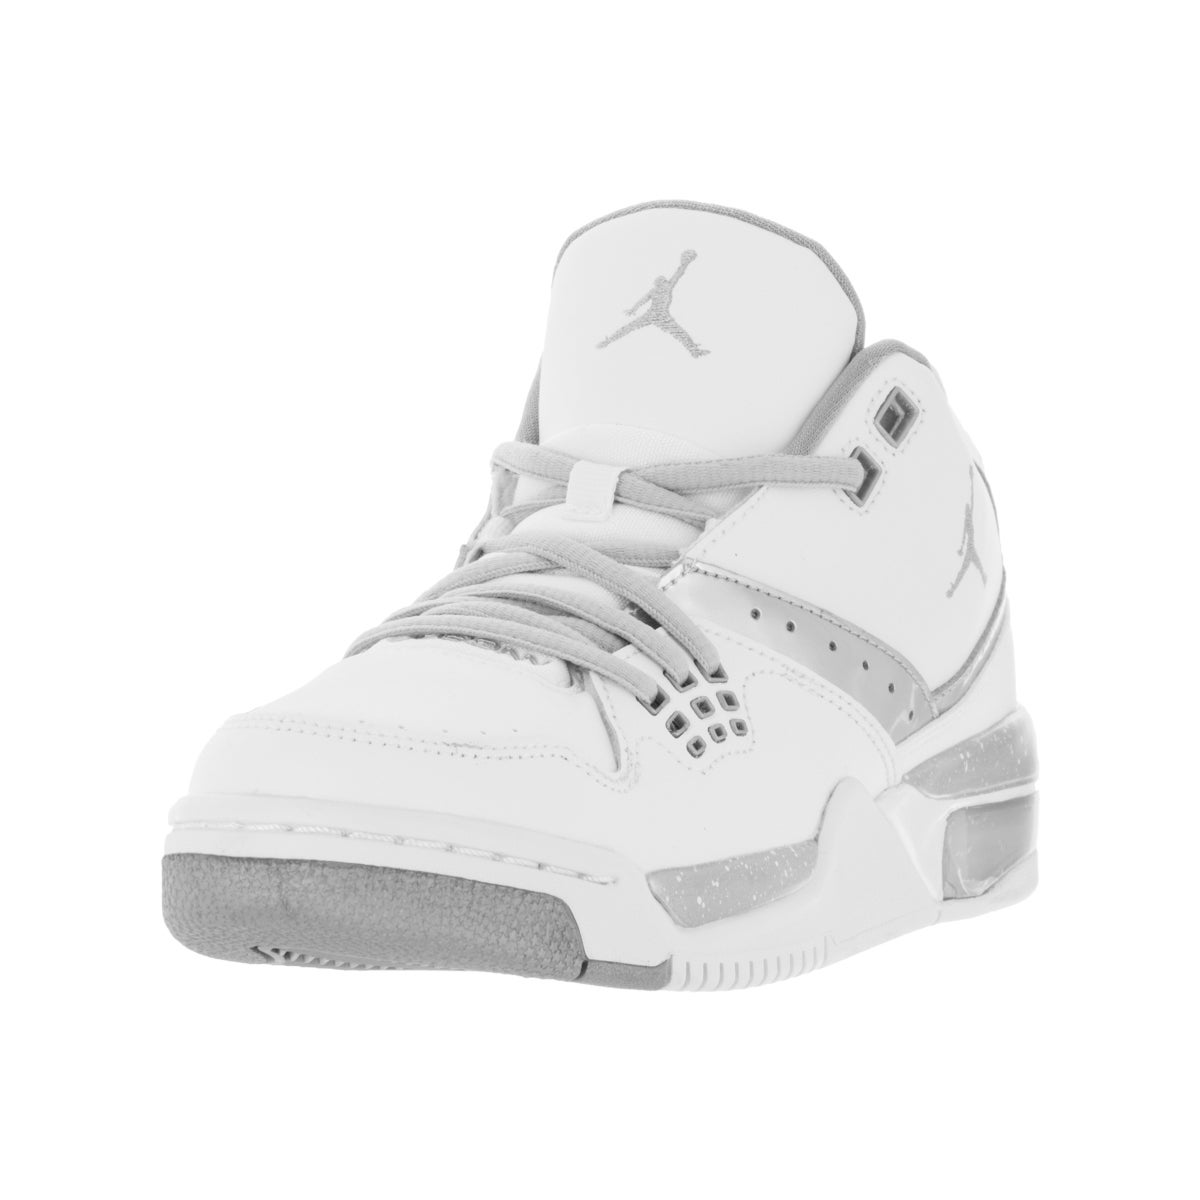 1473b0917a10 Shop Nike Kid s Jordan Flight 23 White Metallic Silver Synthetic Leather Basketball  Shoes - Ships To Canada - Overstock - 13394410